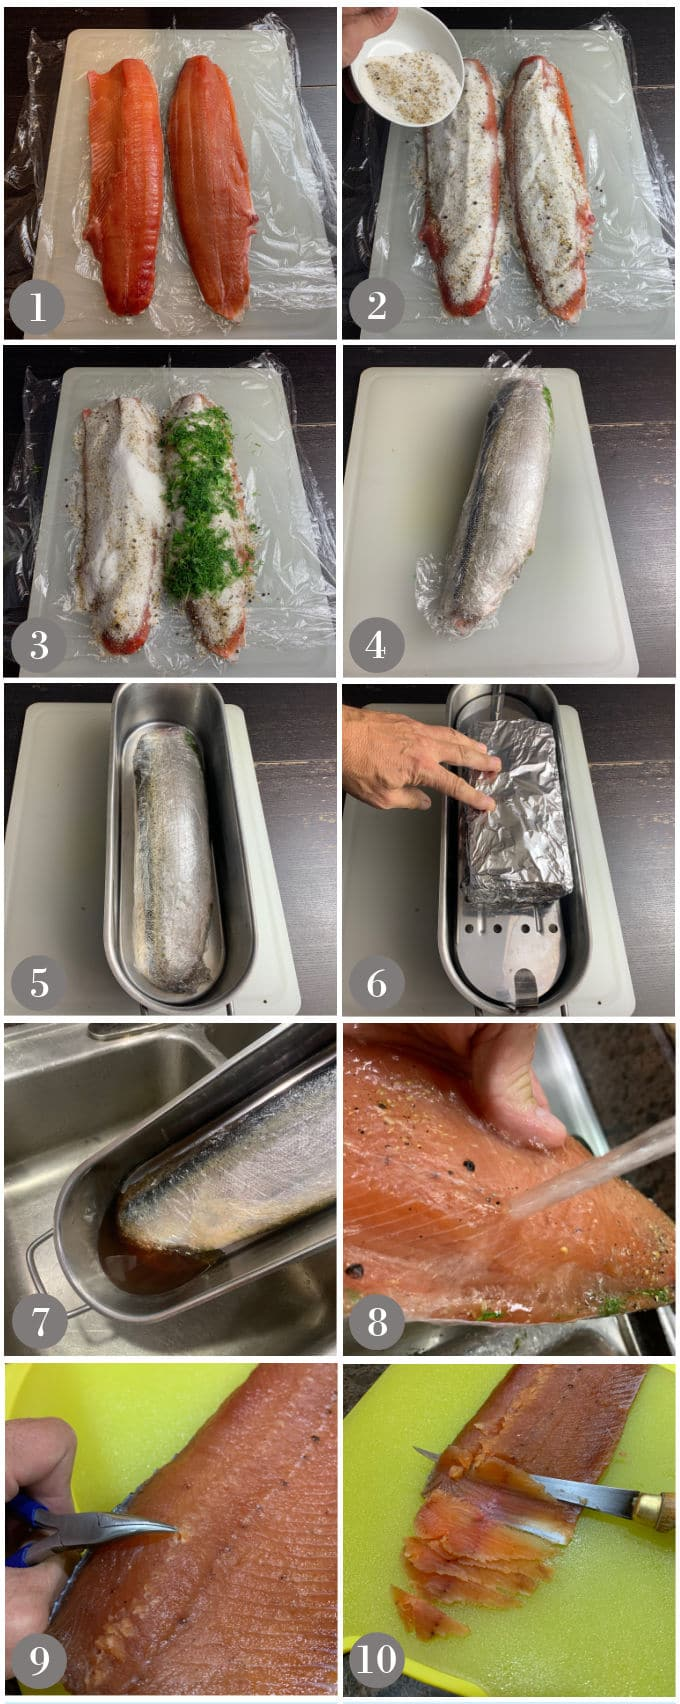 A collage of photos showing the steps to make homemade salt cured salmon or gravlax.